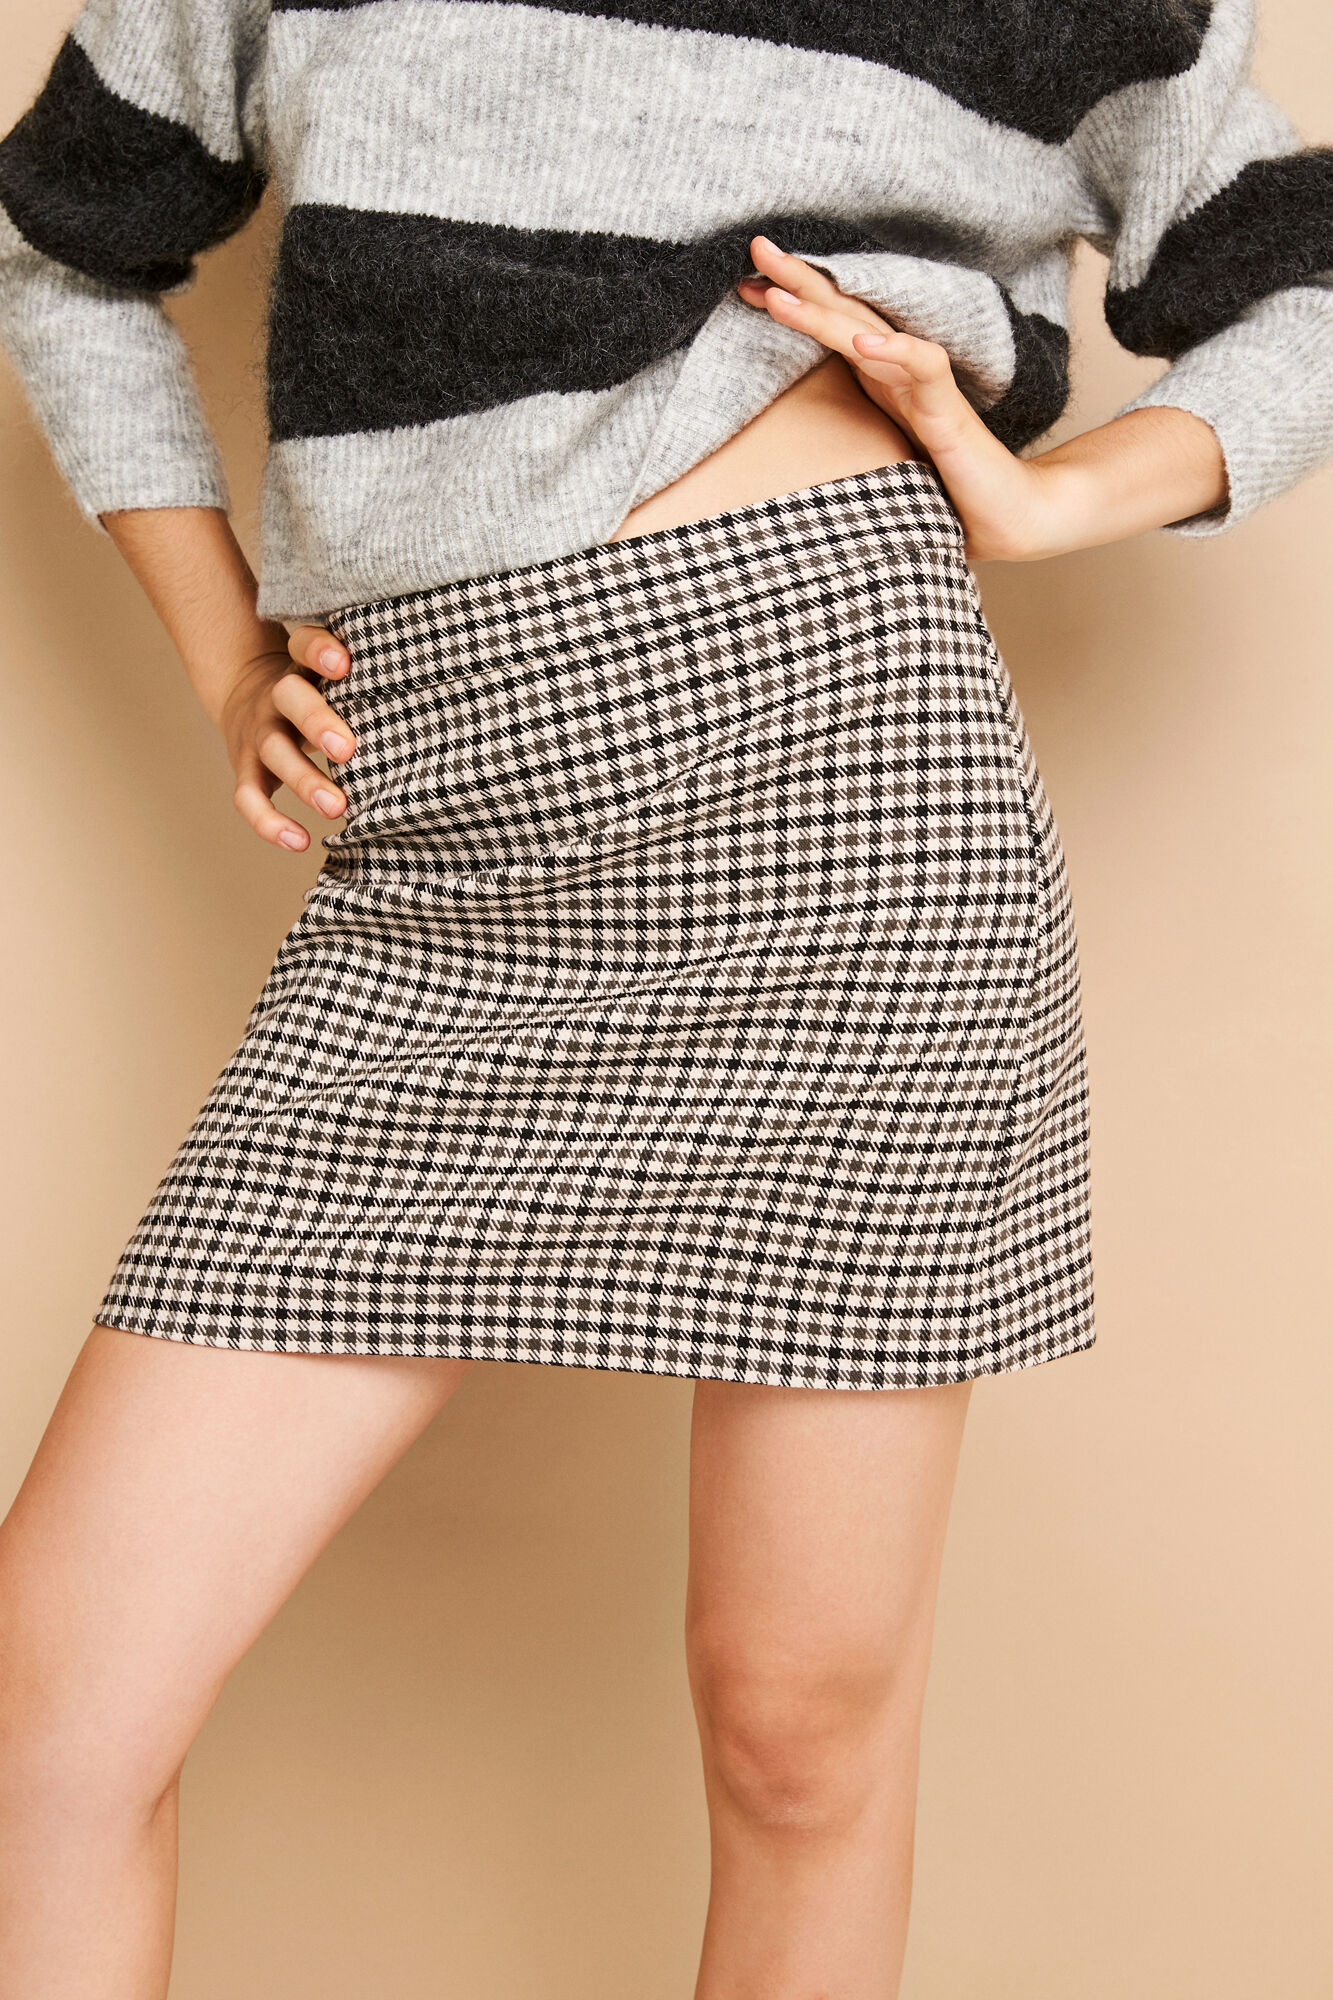 ENFITZGERALD SHORT SKIRT 6548